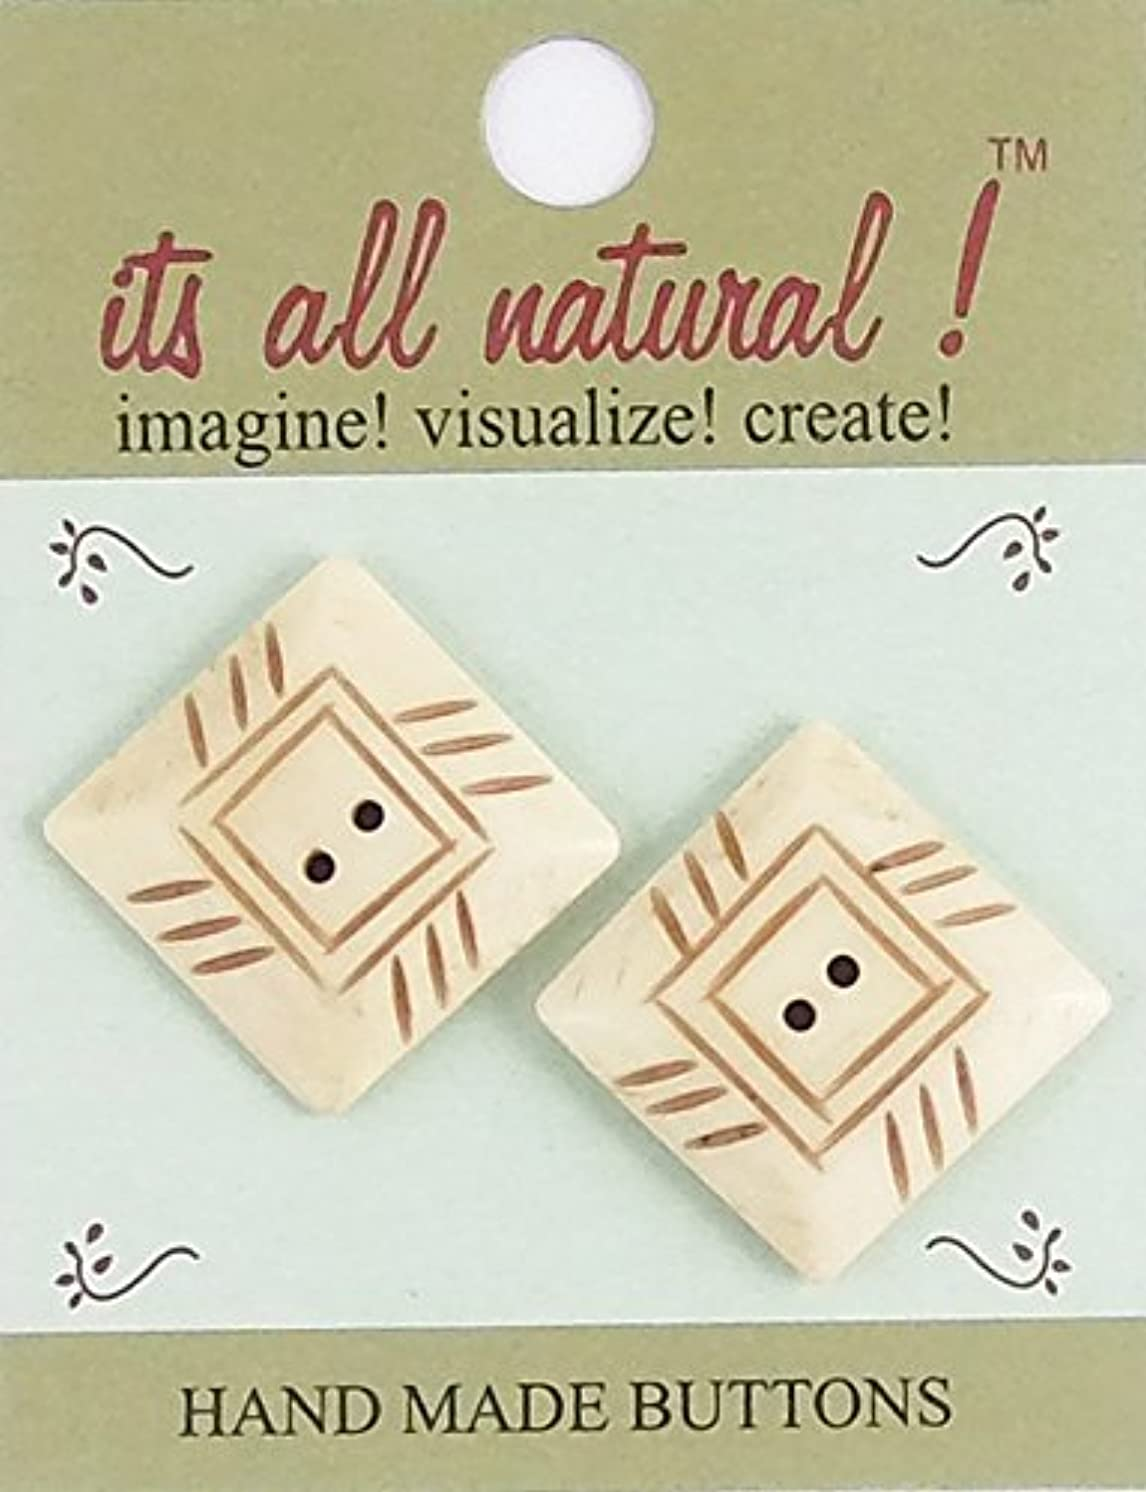 Handmade Natural Bone Buttons - Sewing Quilting Knitting Crochet Renaissance Dance Hawaiian Bridal Costumes Outfit Drapery Home Decor- Antique Ivory - 26x26mm - Pyramid Shape - 2 pcs/pk. #1955